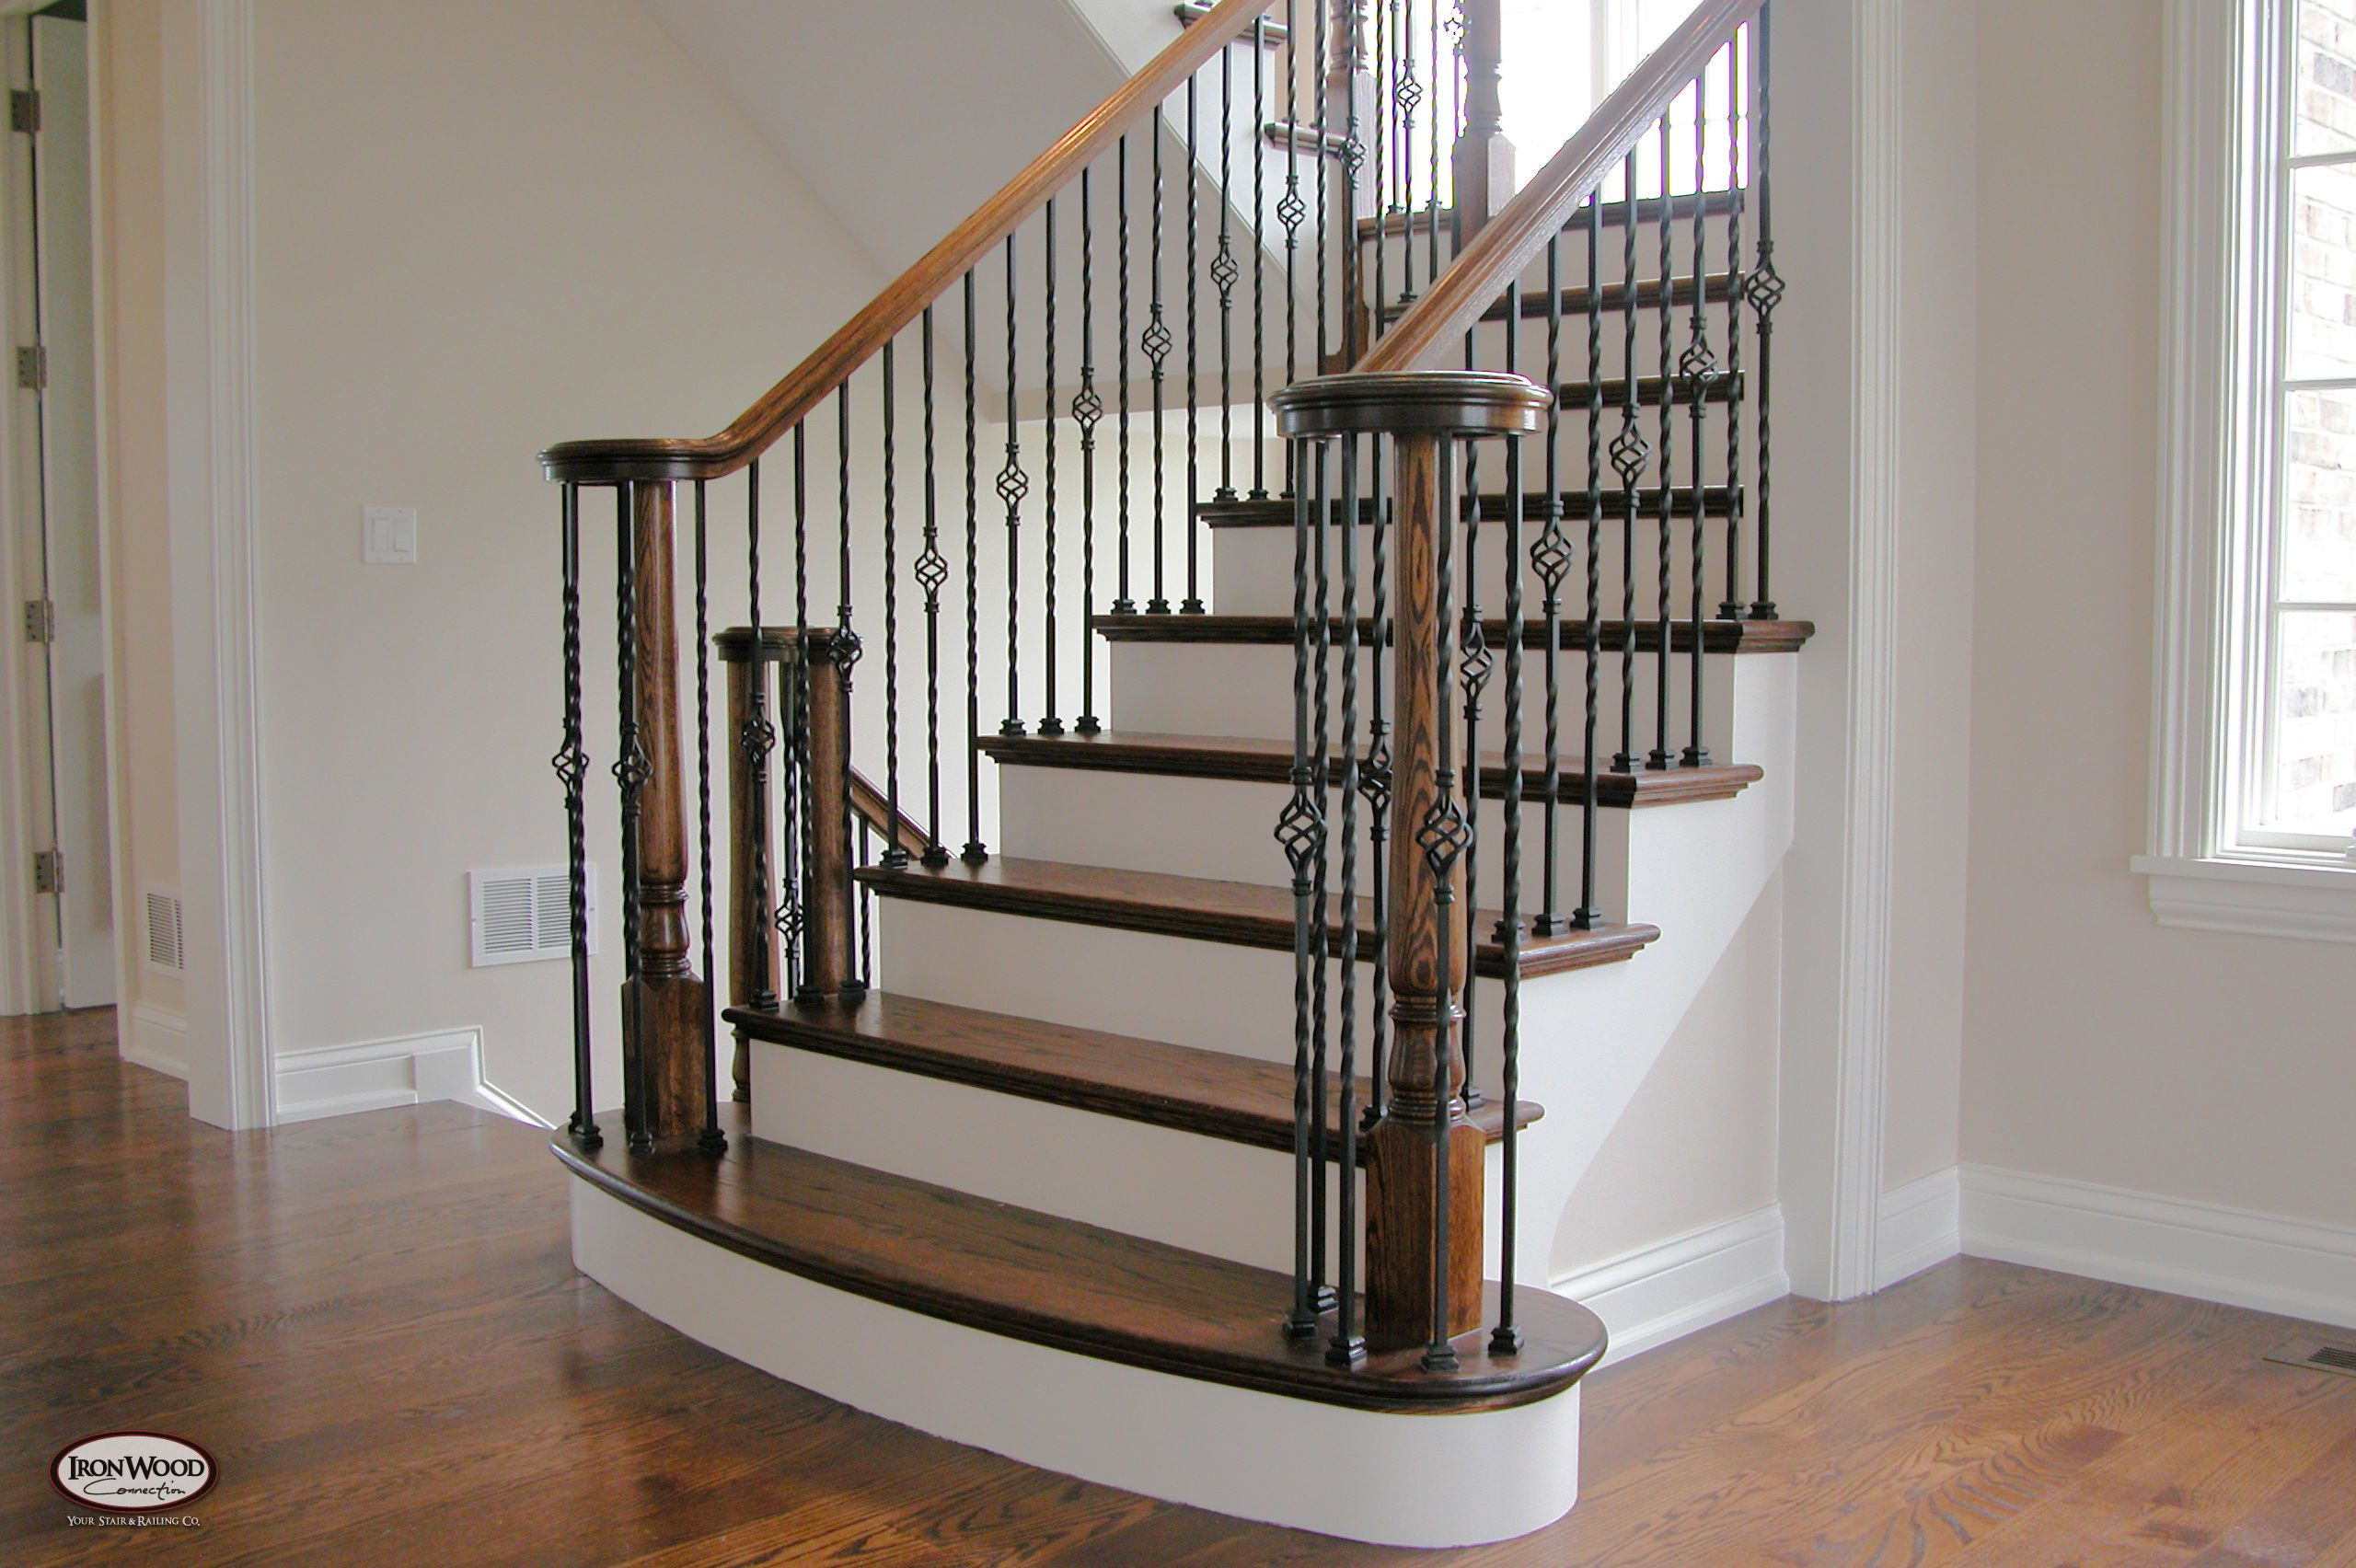 Custom Stair Builder | Stair Remodel Dallas Ft. Worth Mix Of Wood White And  Iron